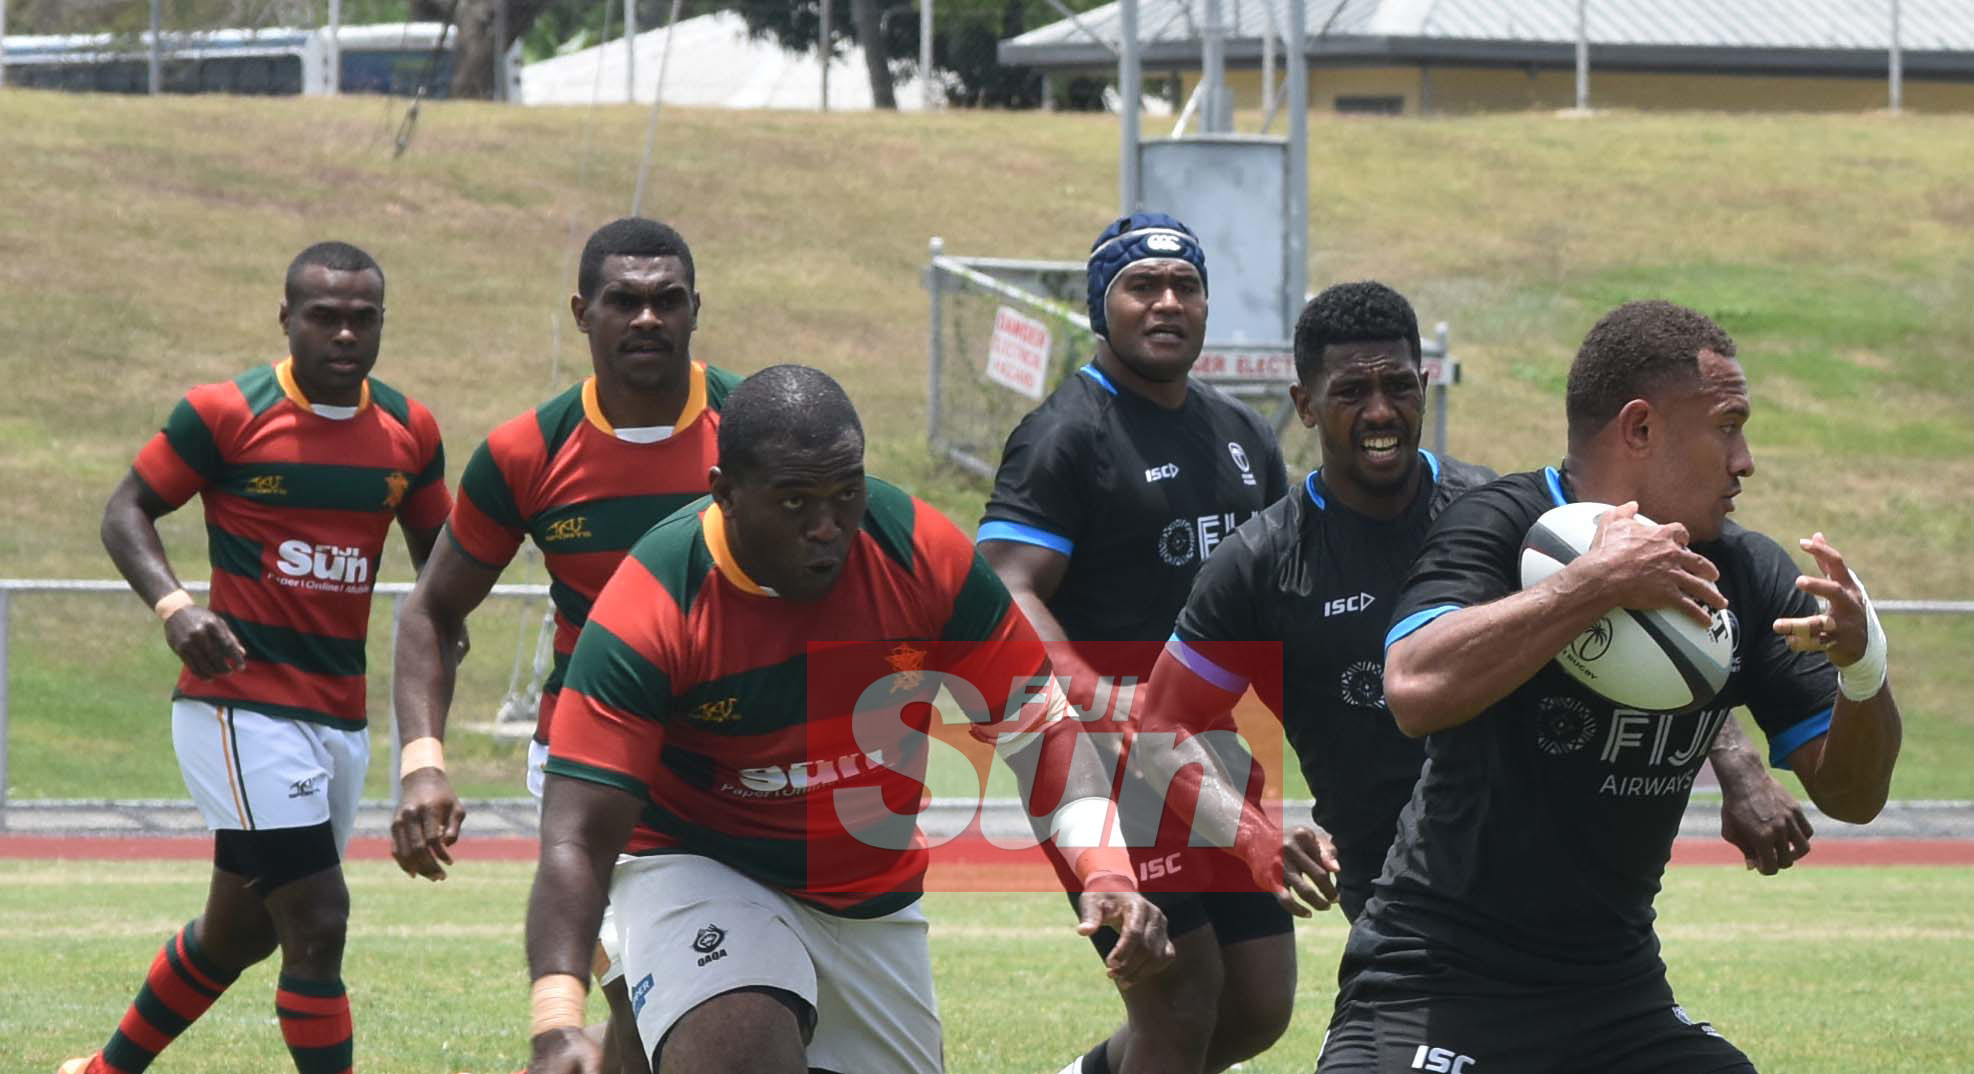 Flying Fijians Cyril Reece in the attack against RFMF team during training at the Churchill park, Lautoka yesterday. Photo: WAISEA NASOKIA